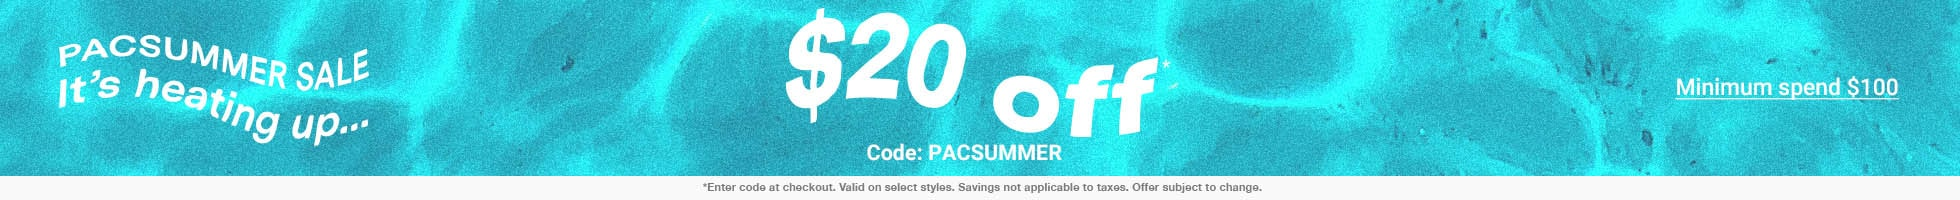 $20 off $100 use code PACSUMMER